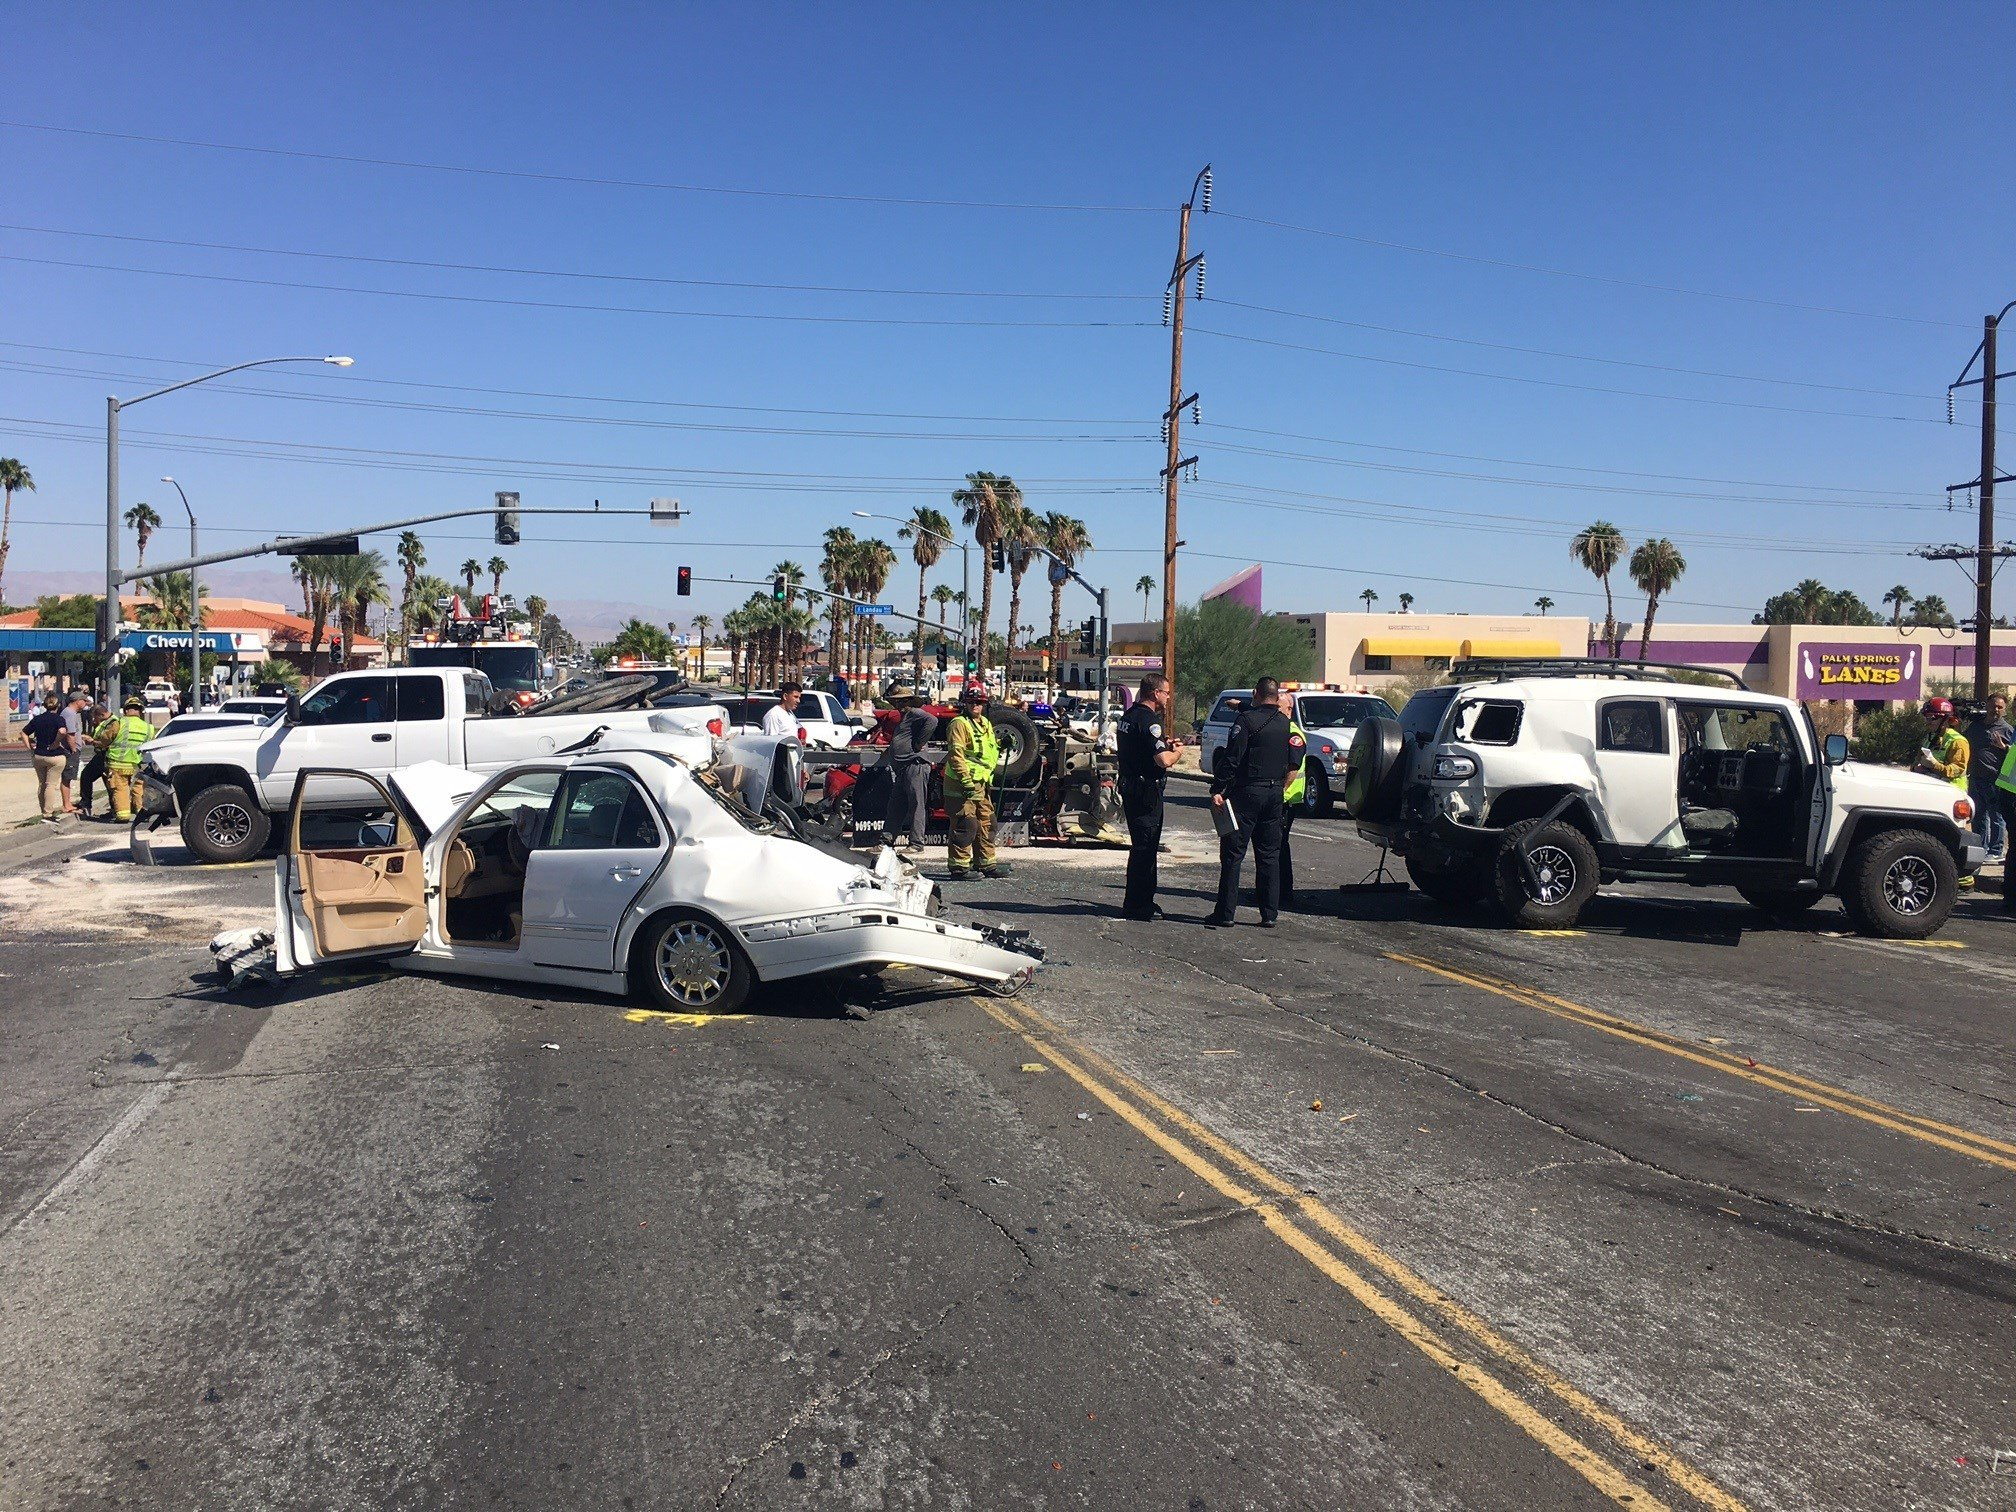 At least 7 vehicles were involved in a collision on Ramon Road near Landau Boulevard.